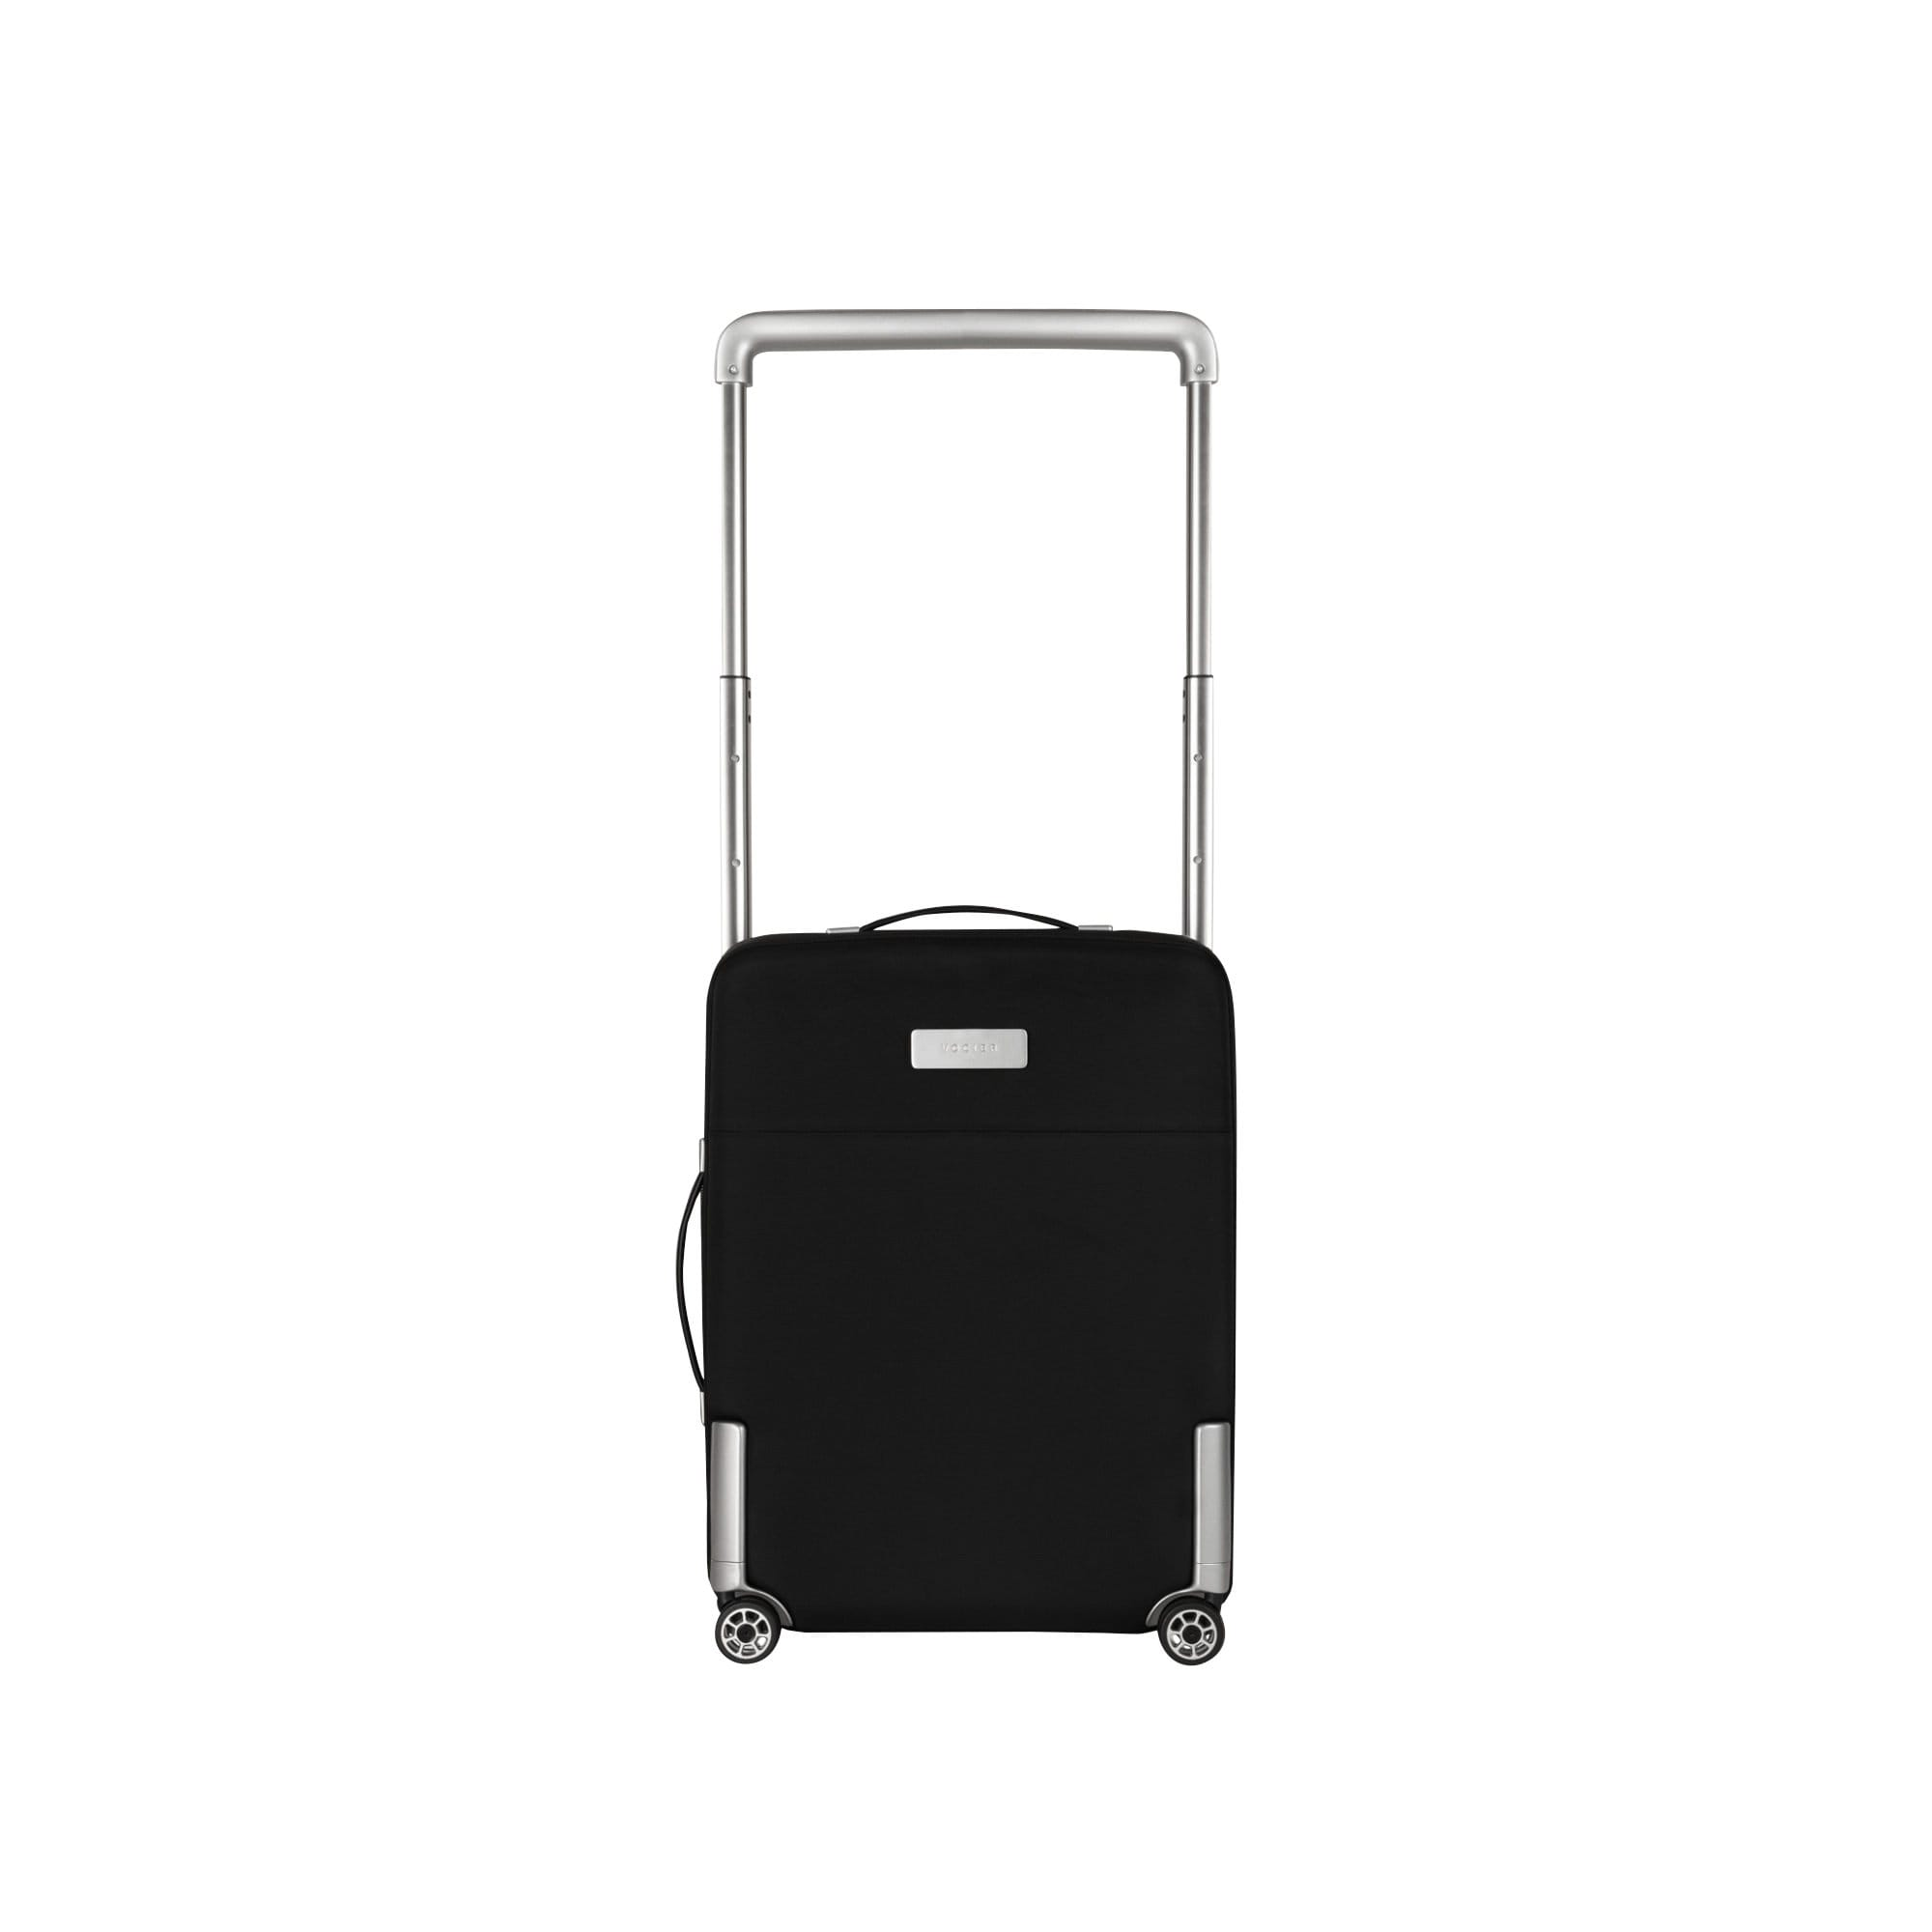 Avant carry-on luggage special offer